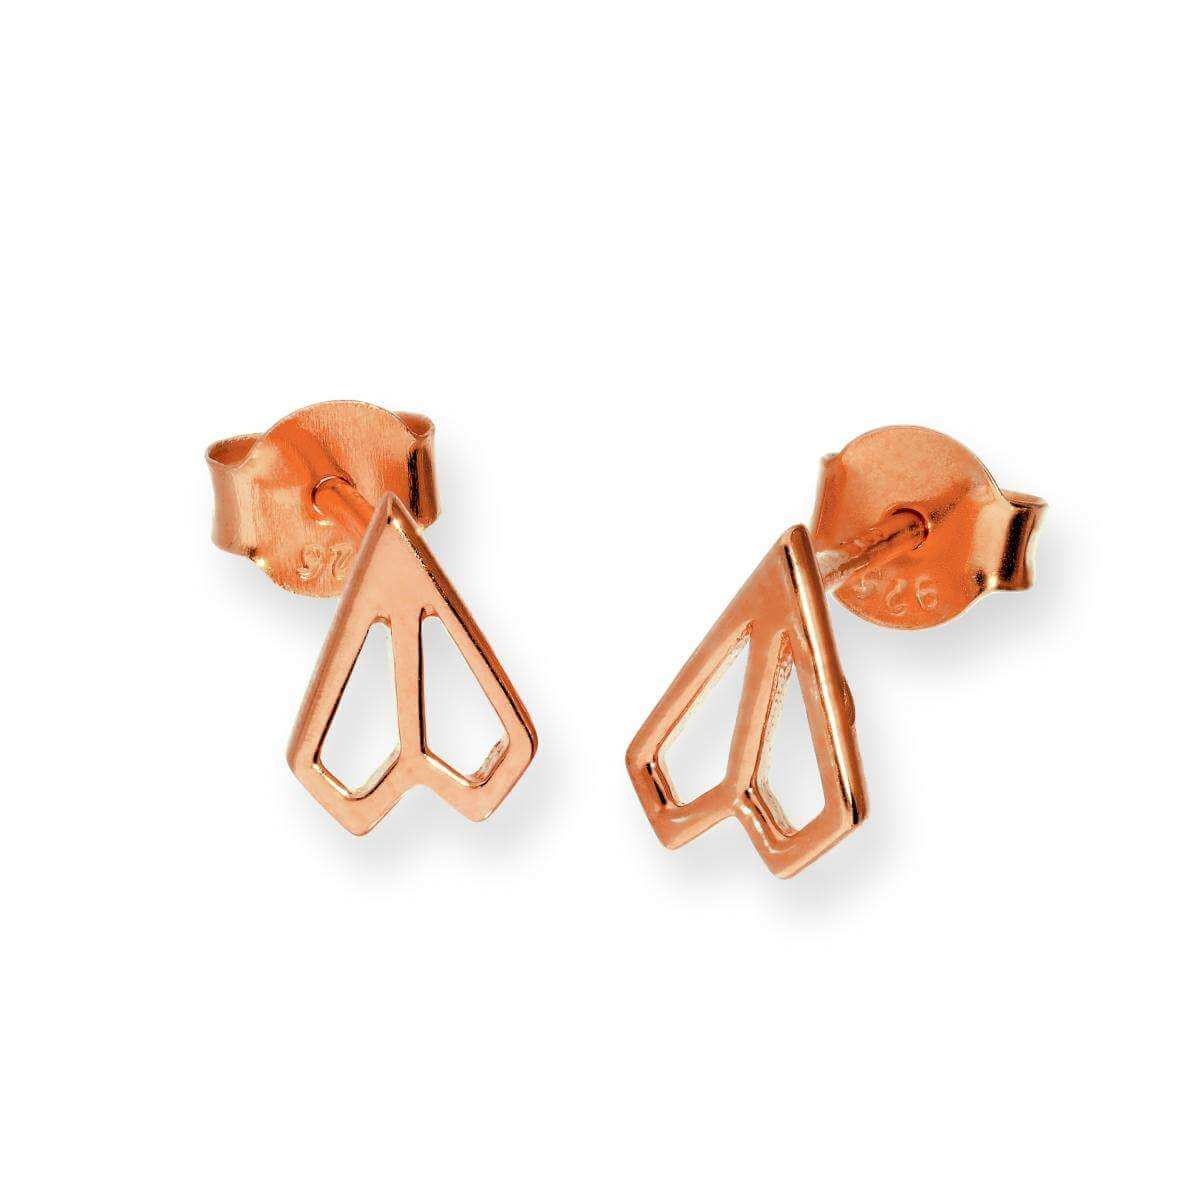 Rose Gold Plated Sterling Silver Paper Plane Stud Earrings